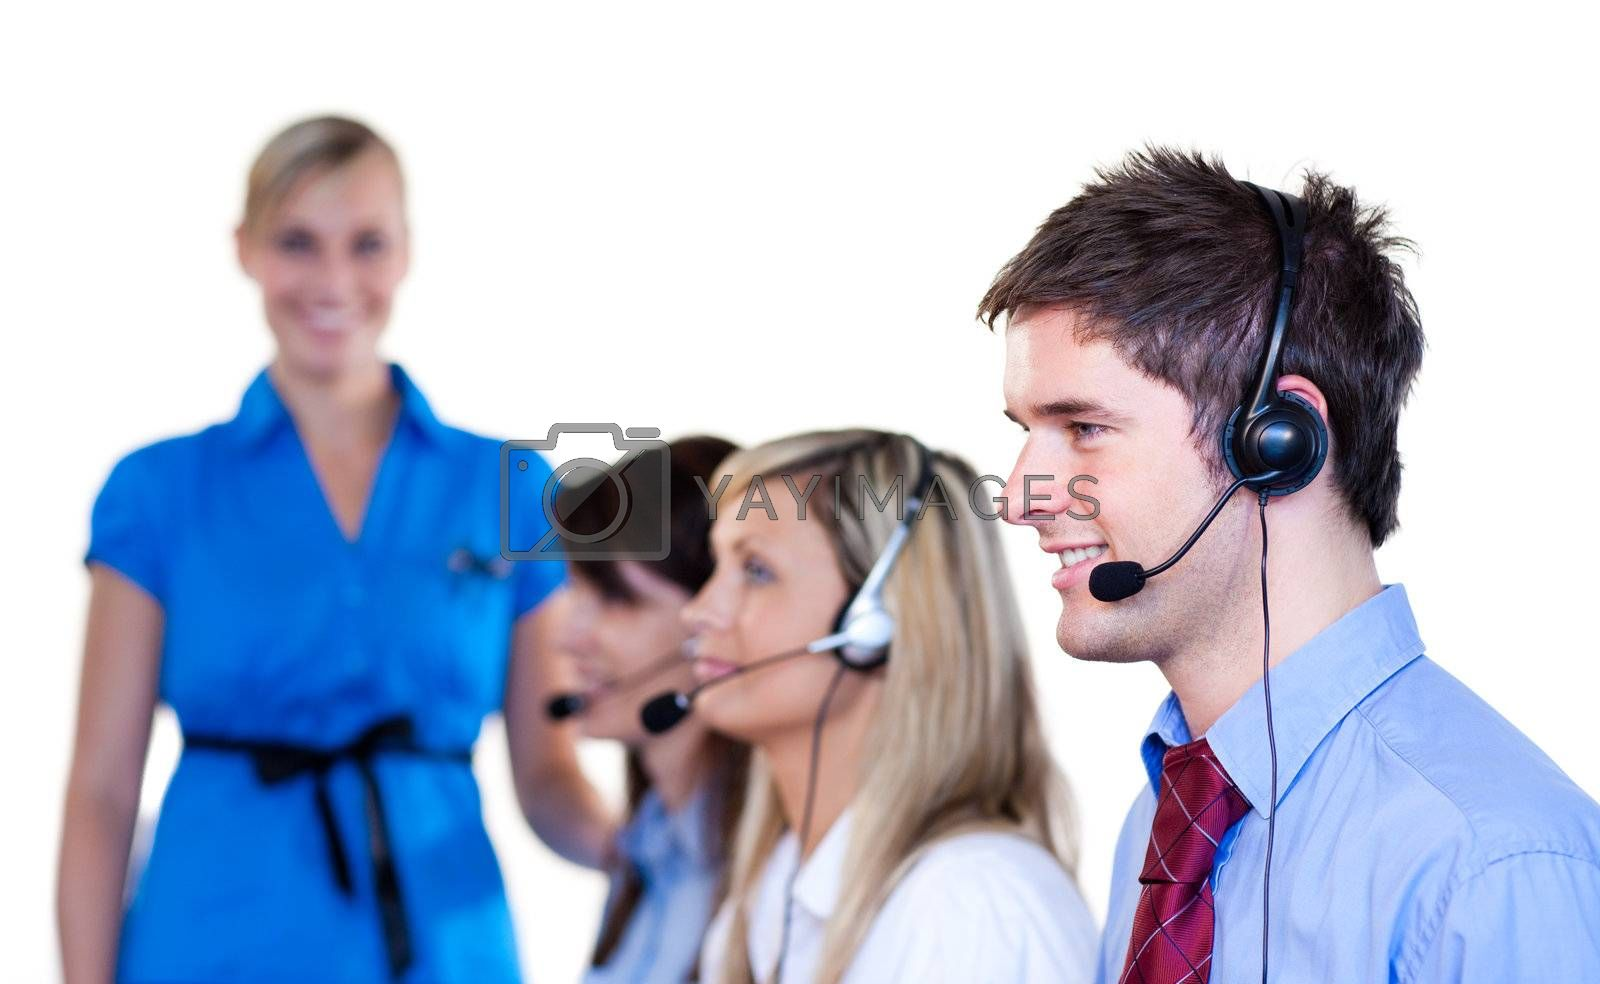 Businesspeople talking with headset in a call center businessmanager in background